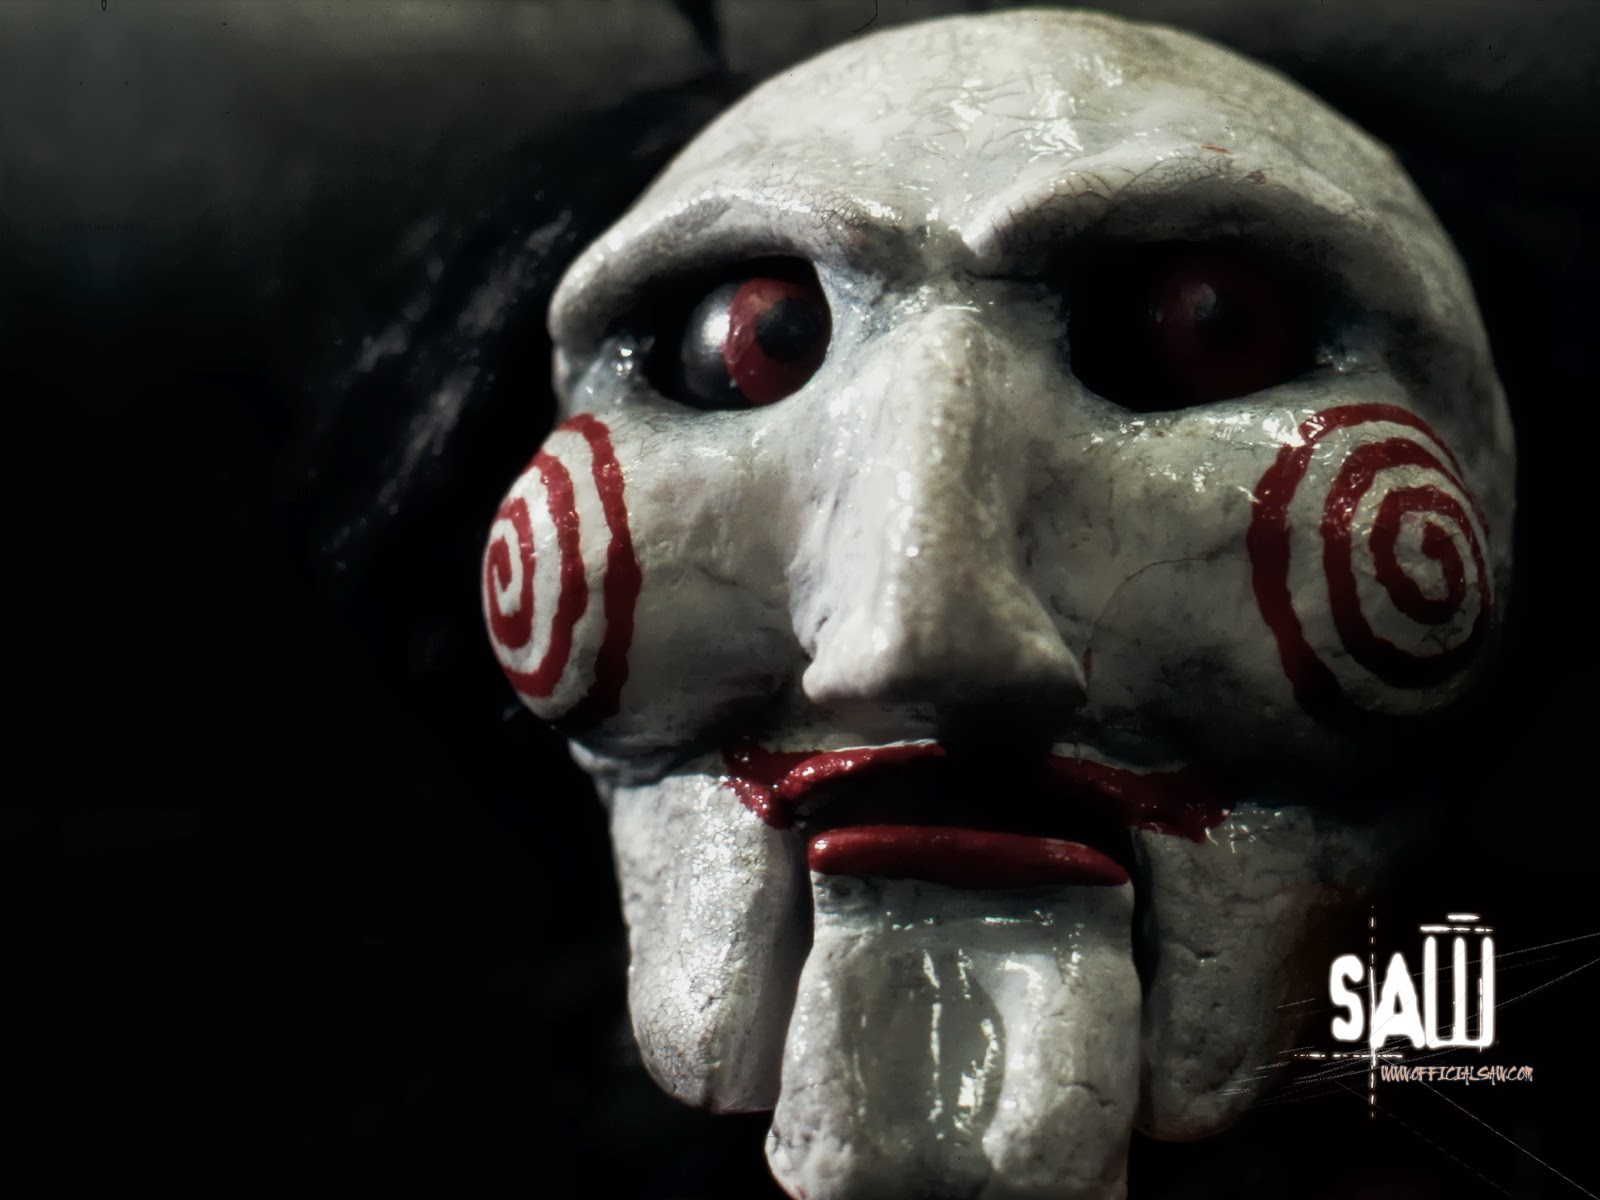 A Horror Diary: My thoughts about the Saw movies